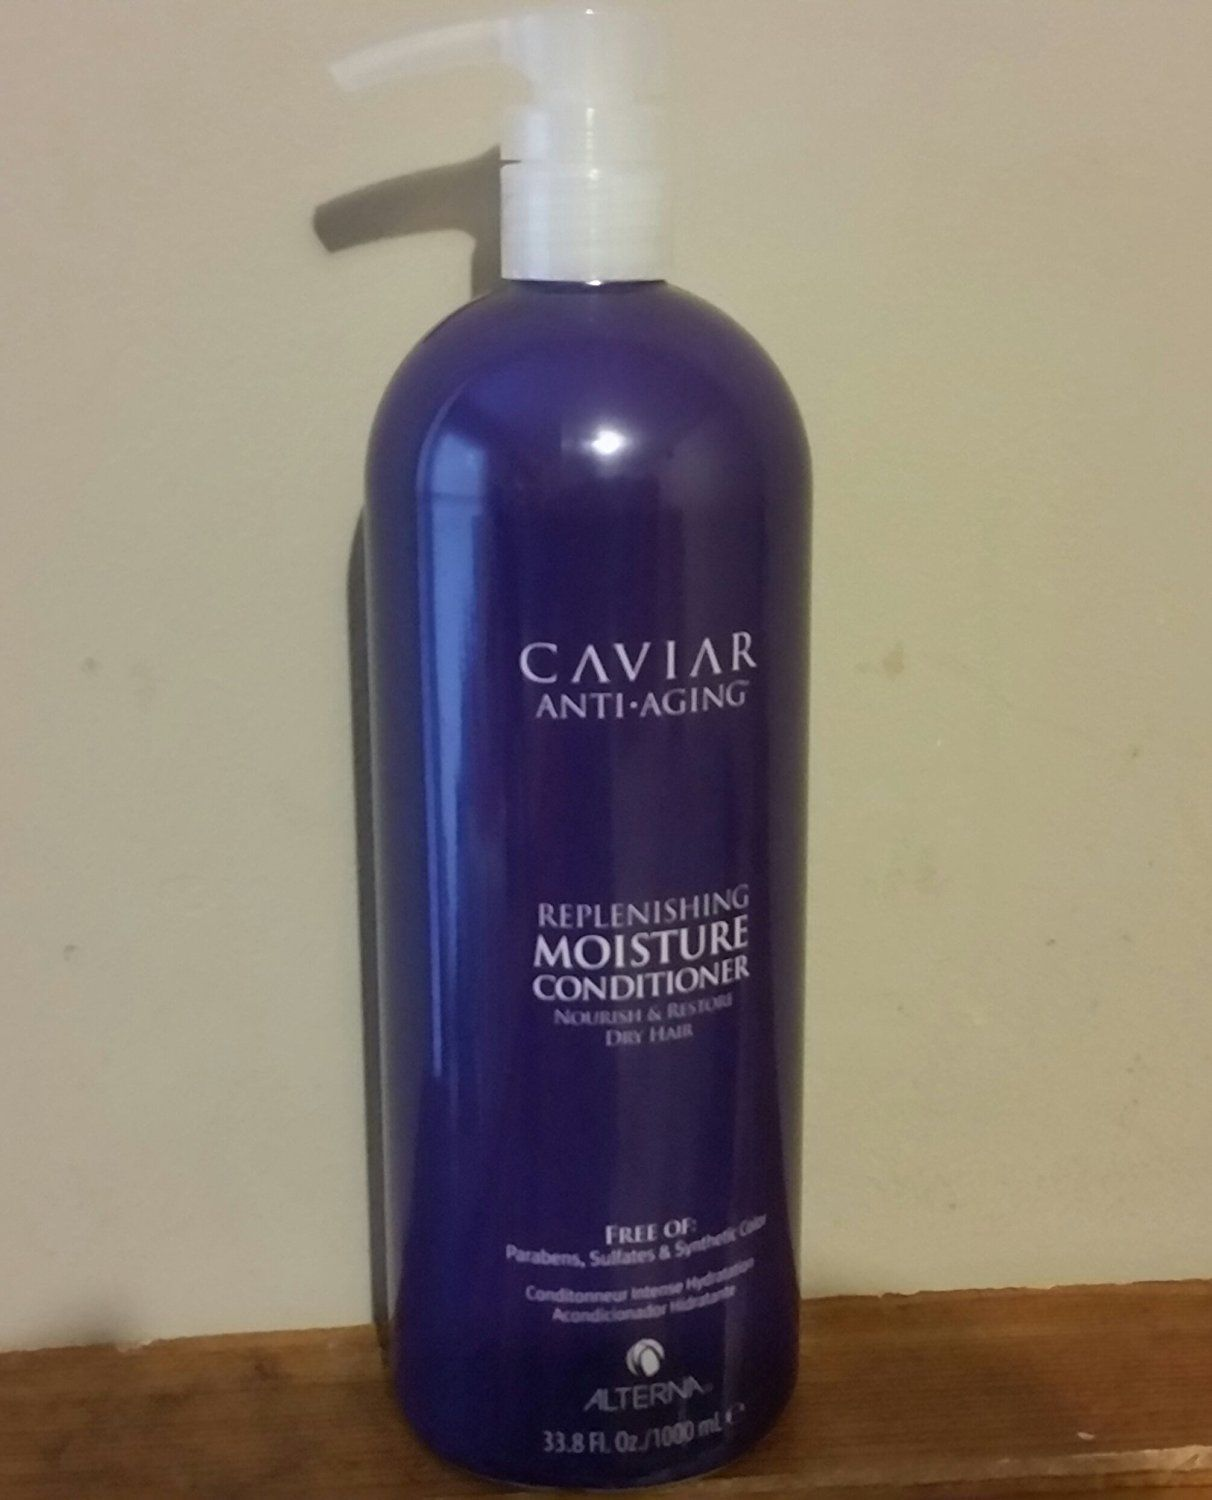 Alterna Caviar Moisture Replenishing Conditioner 33.8 oz